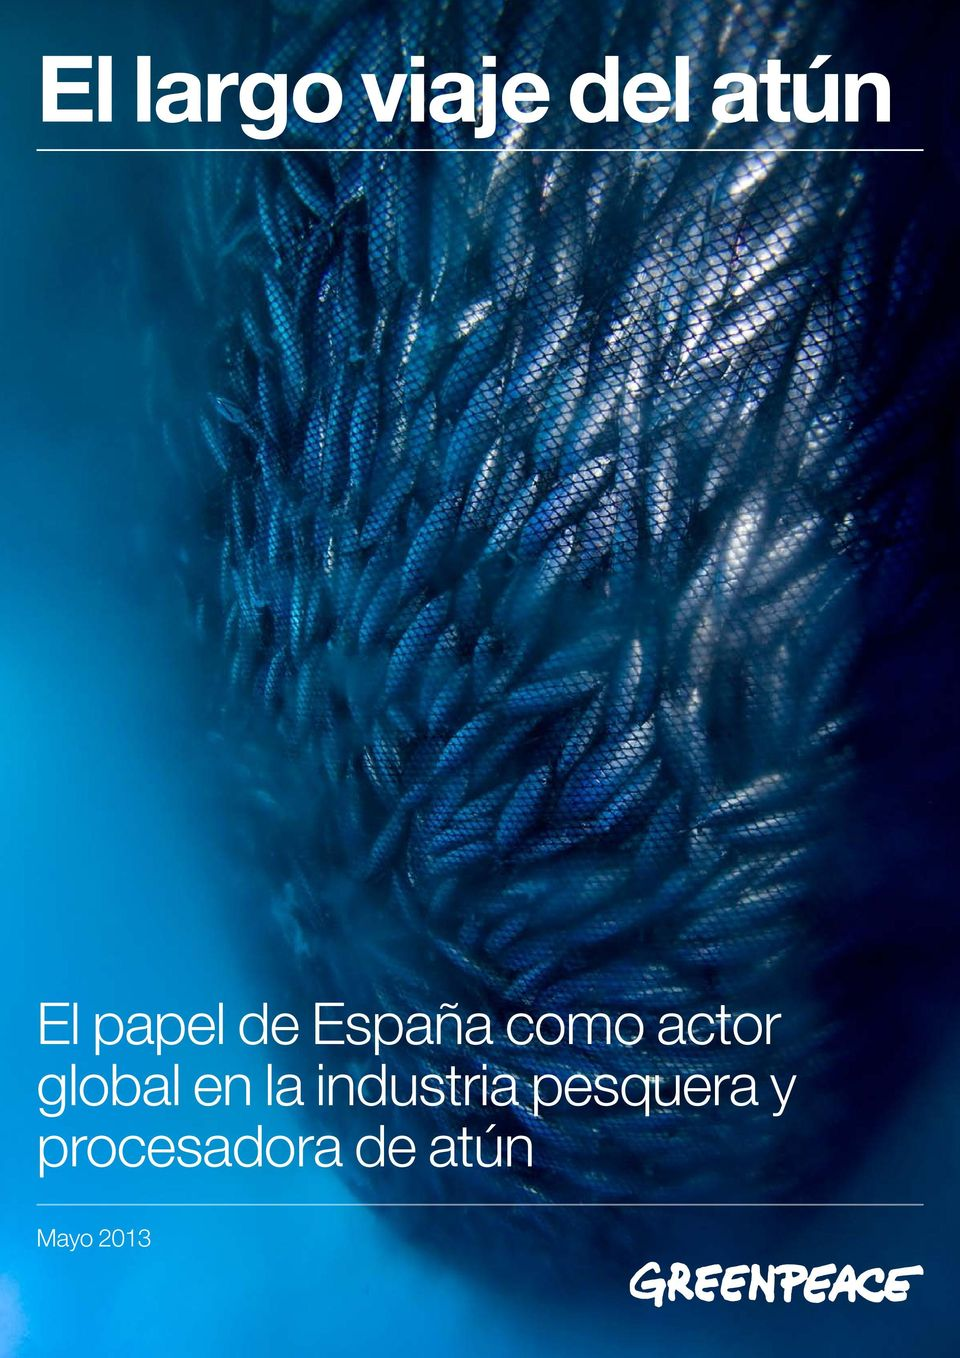 global en la industria